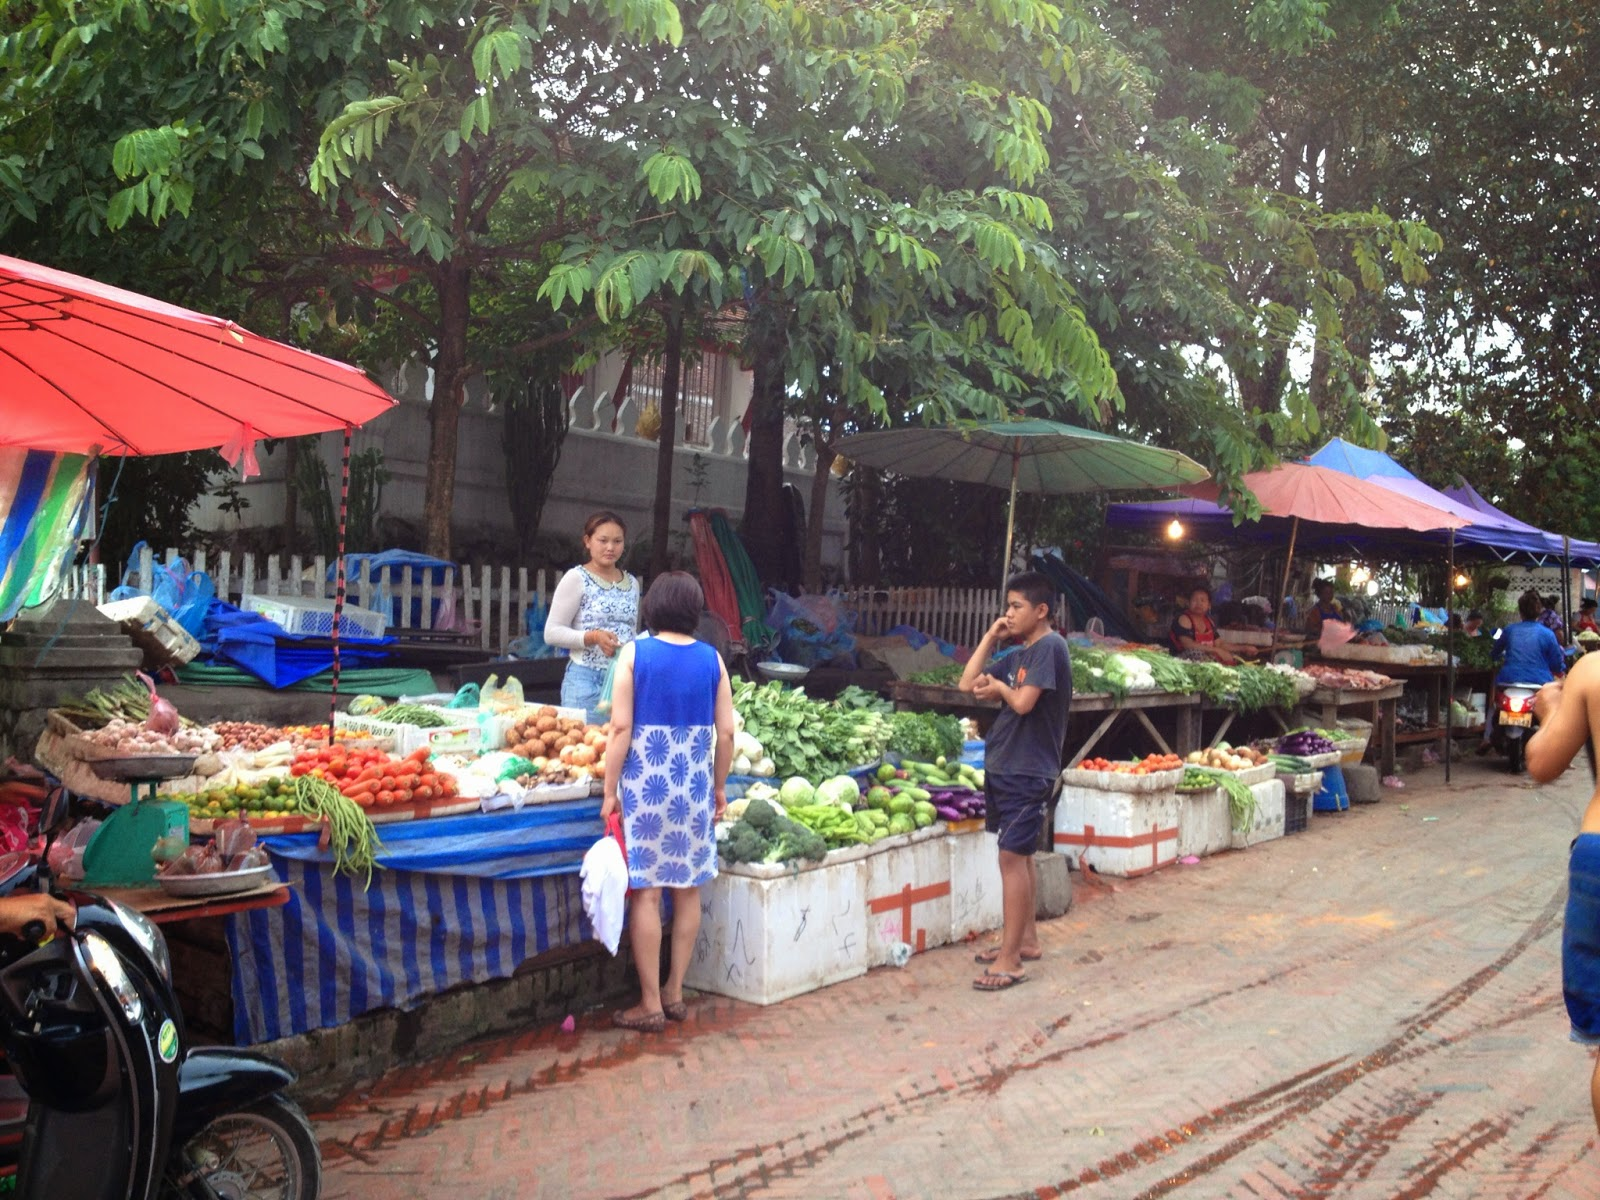 Luang Prabang - We visited a local outdoor market